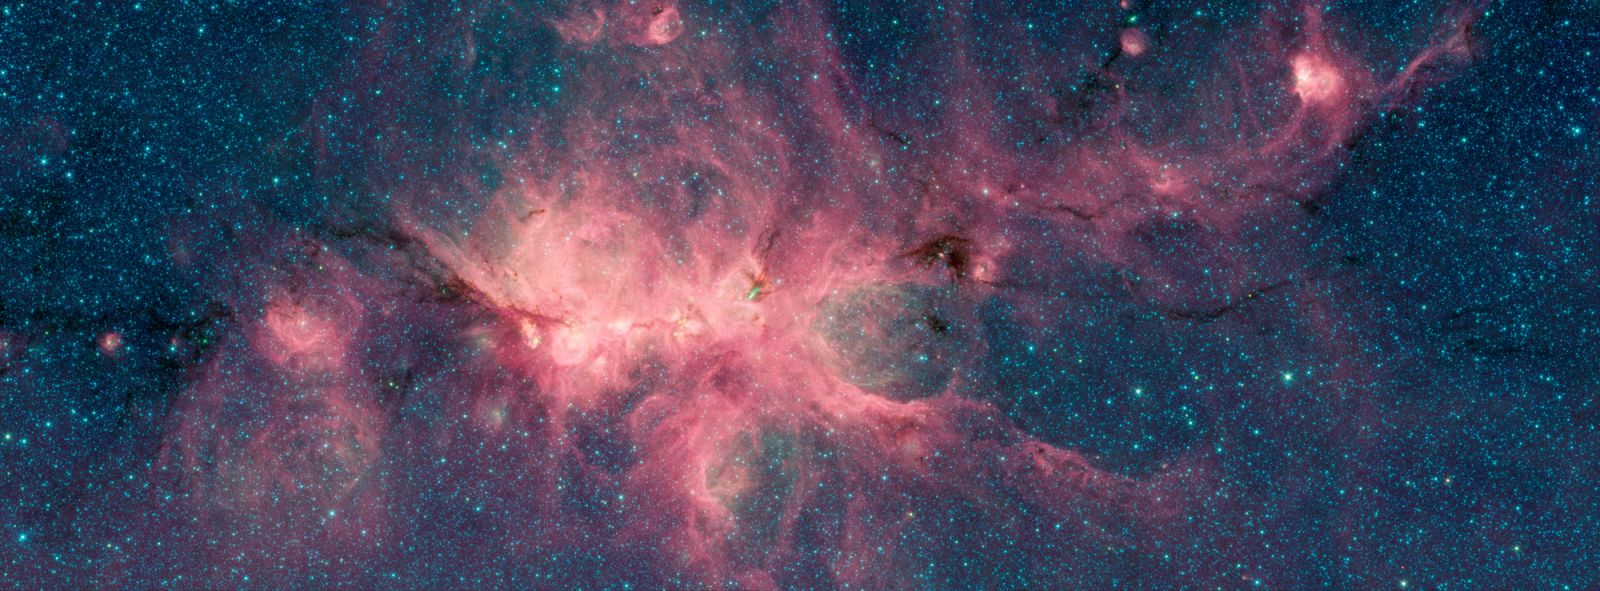 The Cat's Paw Nebula, imaged here by NASA's Spitzer Space Telescope using the IRAC instrument, is a star-forming region inside the Milky Way Galaxy. The dark filament running through the middle of the nebula is a particularly dense region of gas and dust. Image Credit: NASA/JPL-Caltech